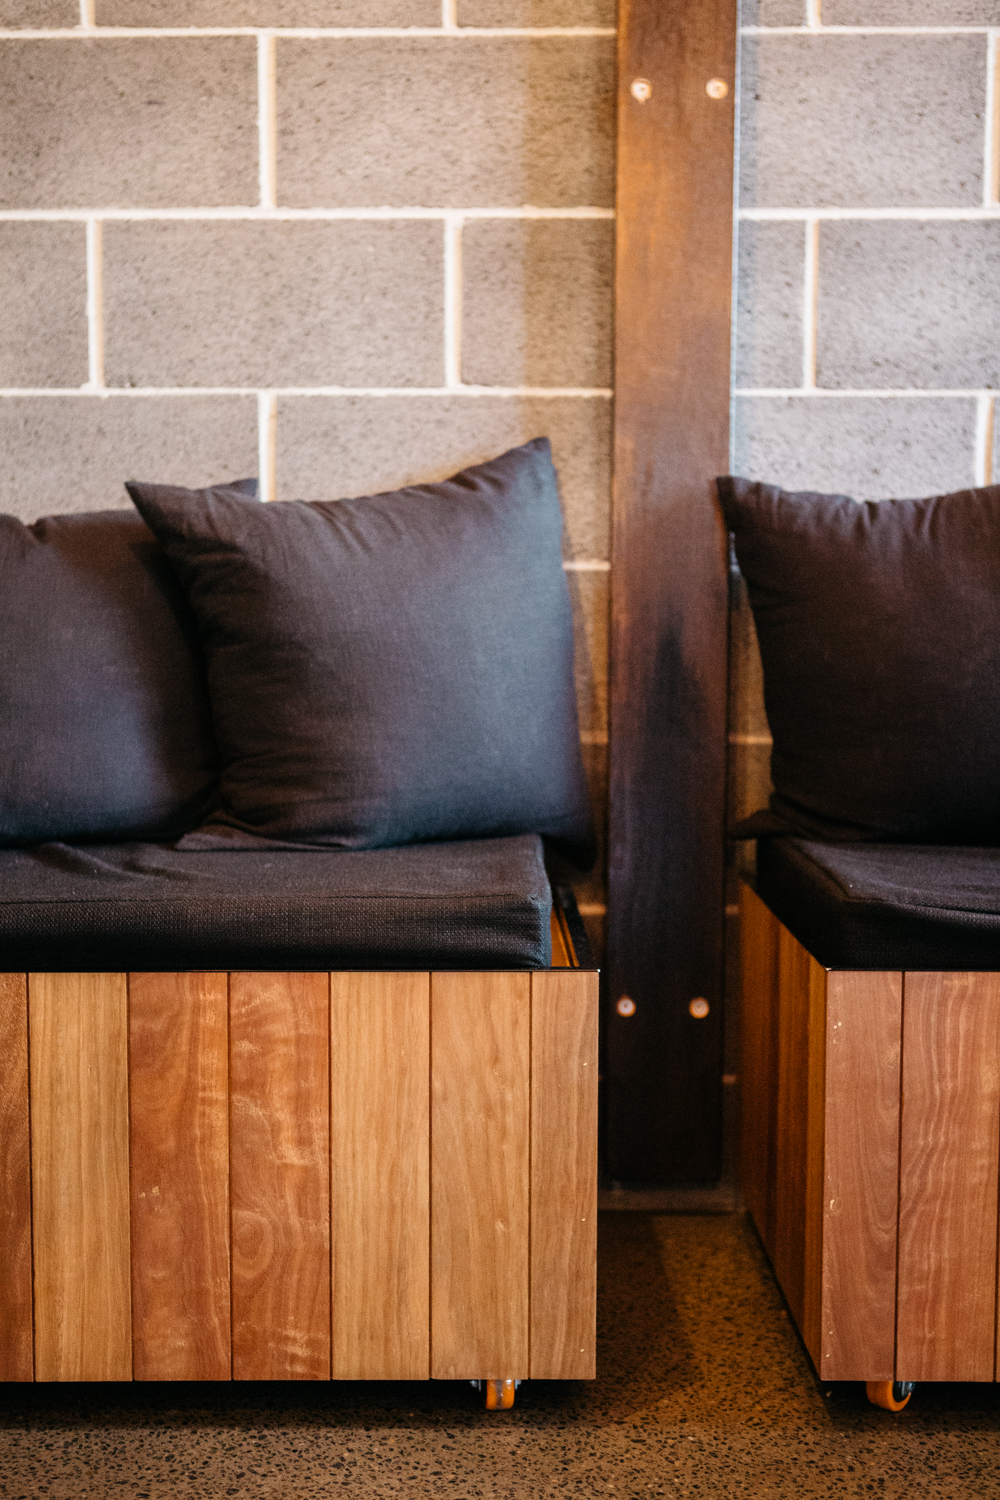 Banquette seating at Kin Cafe (Spotted gum)